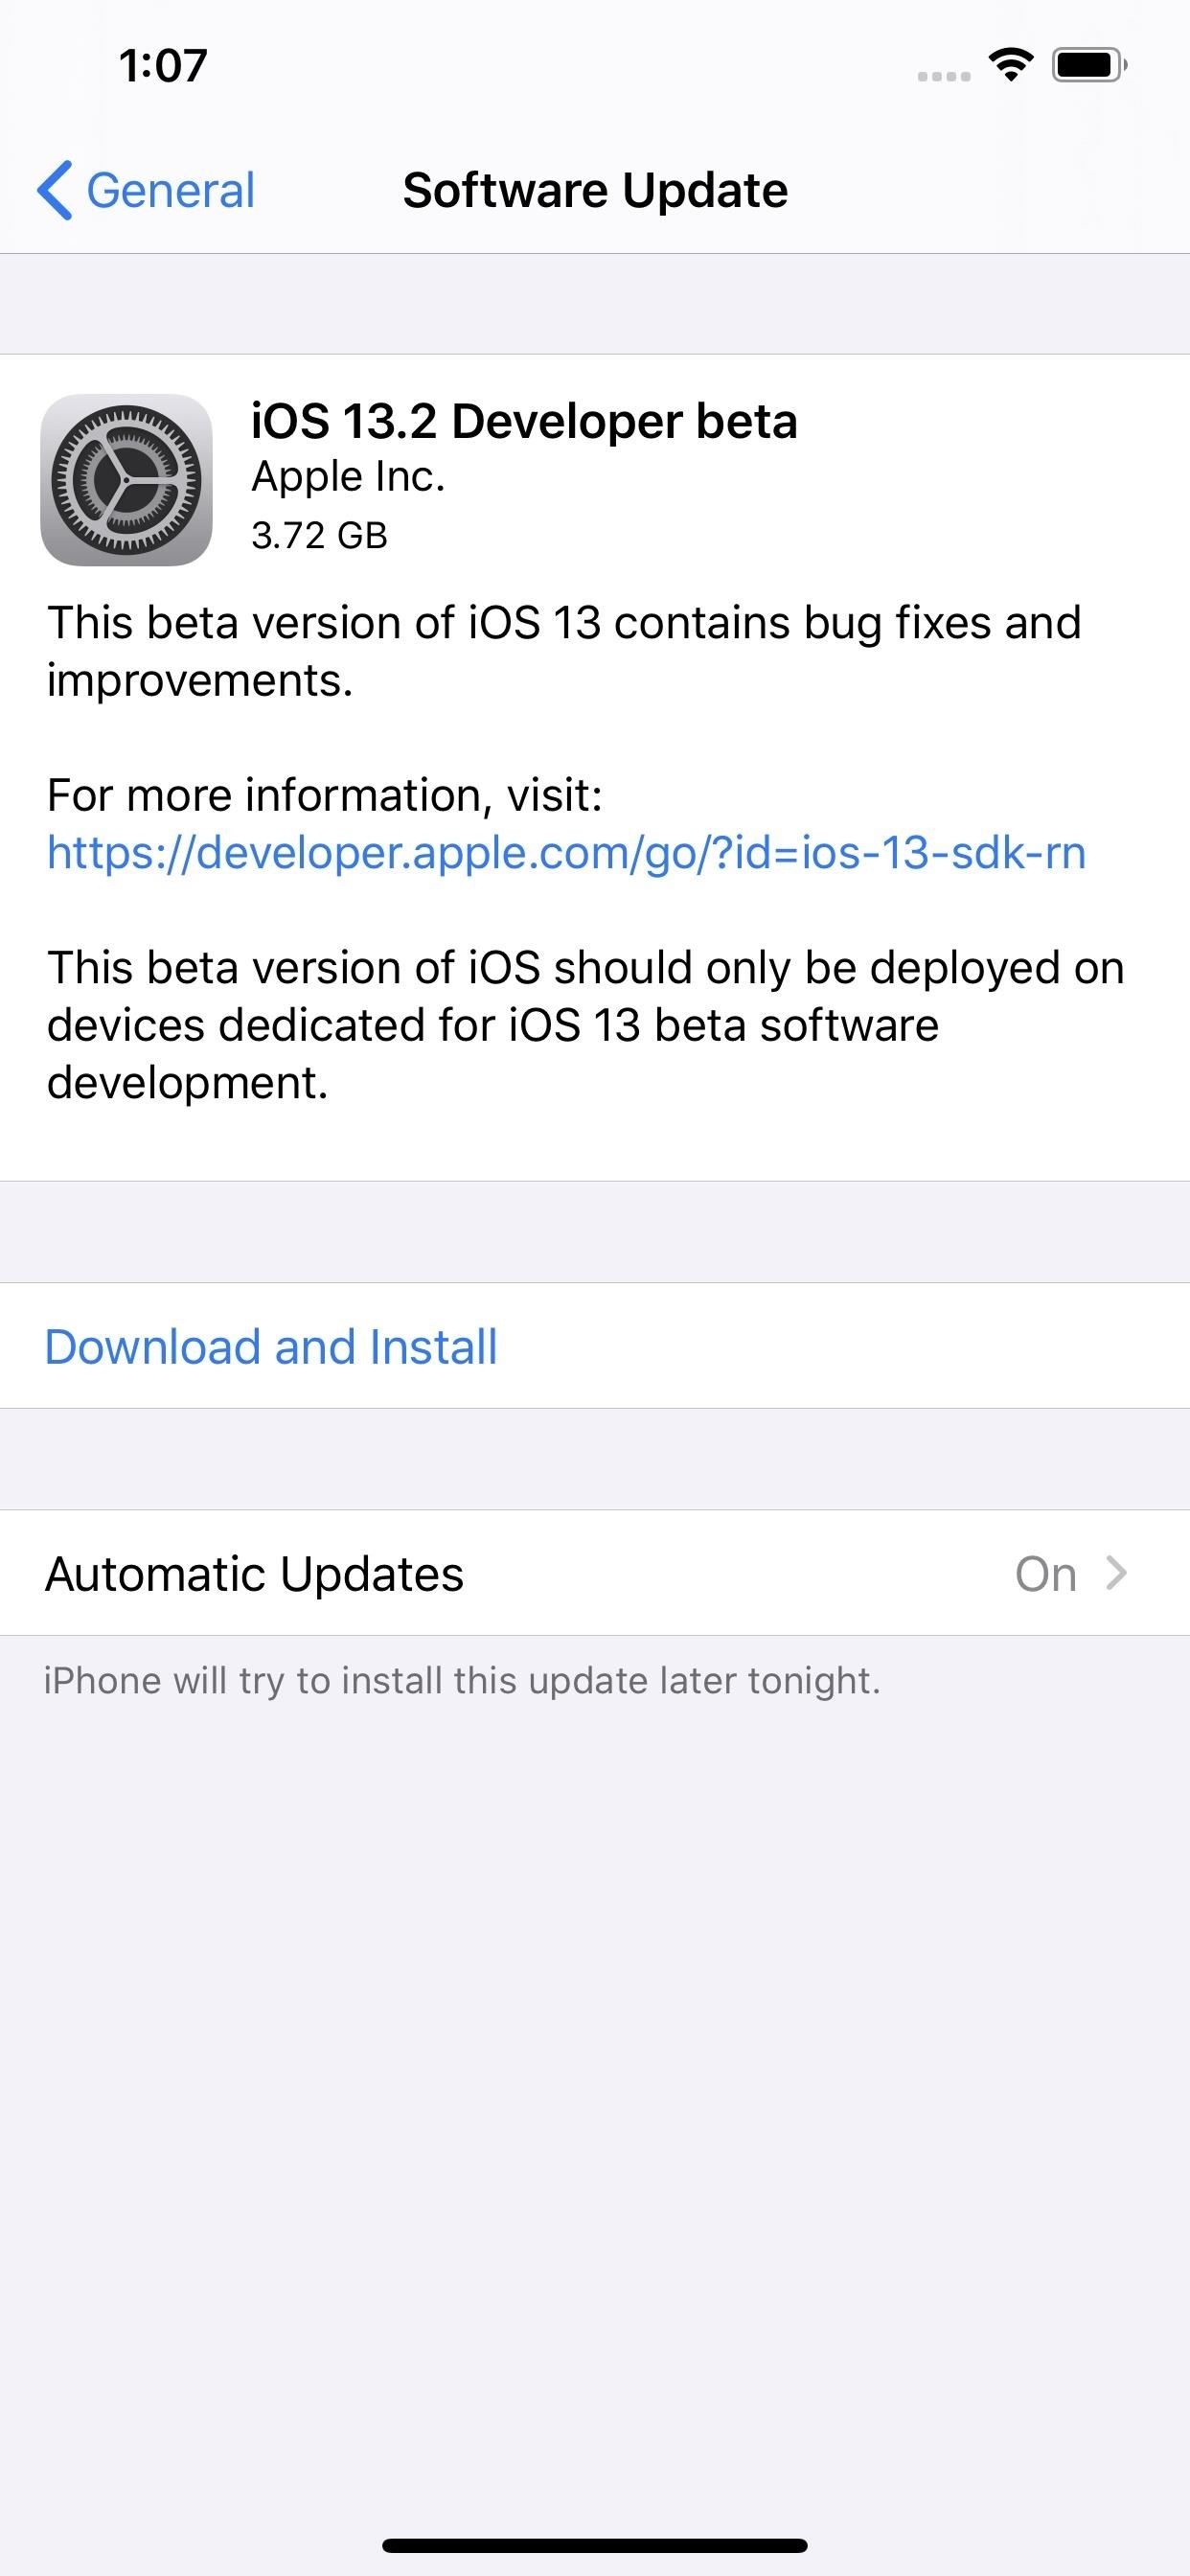 Apple Releases iOS 13.2 Developer Beta, Includes 'Deep Fusion' Camera Update for iPhone 11, 11 Pro & 11 Pro Max